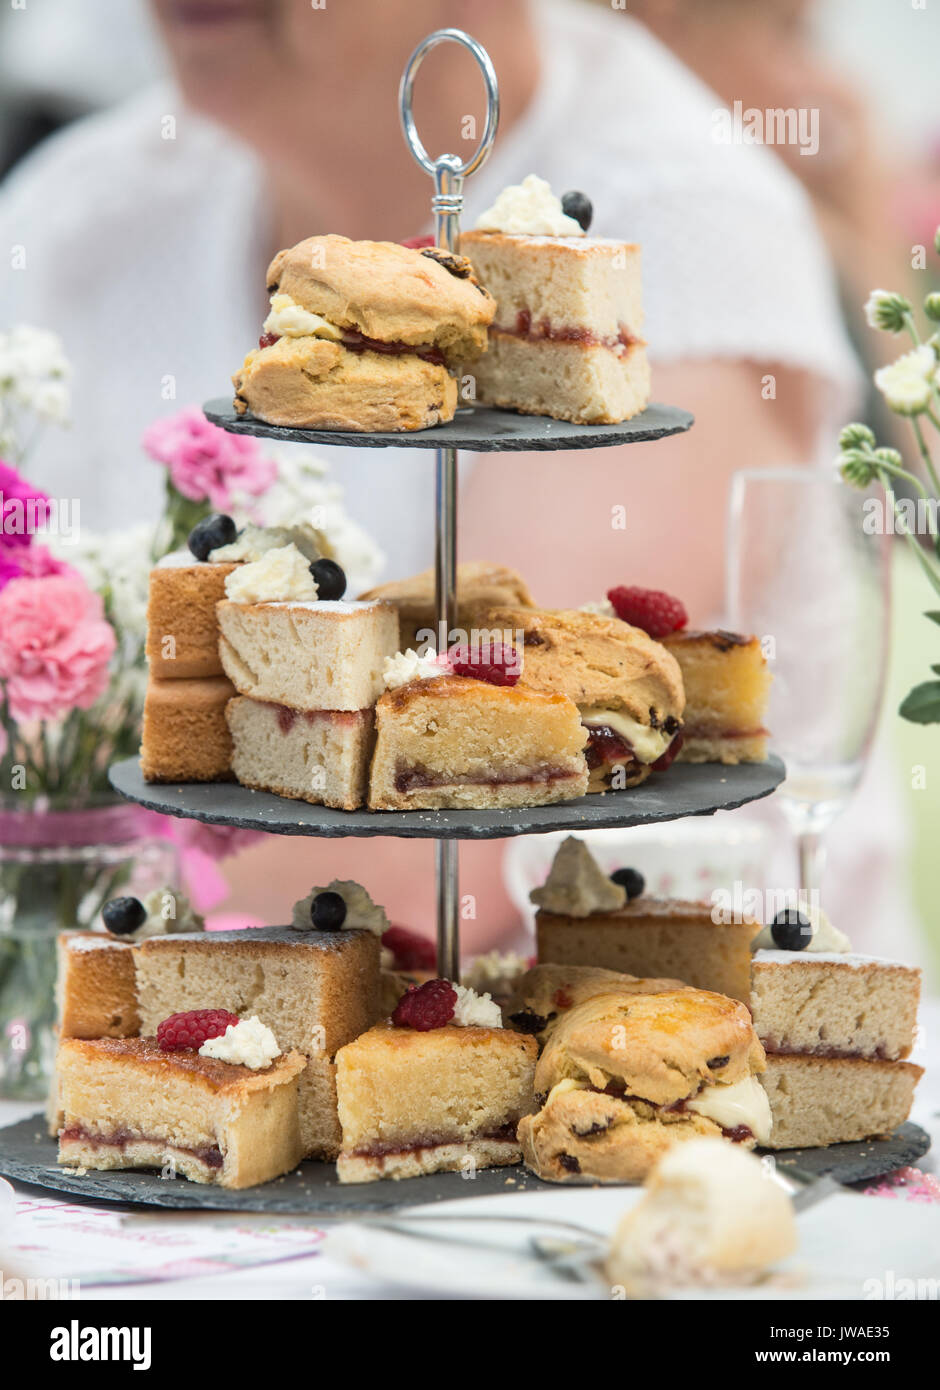 Copyrighted Image by Paul Slater/PSI Generic shot of cakes on a cake stand - Stock Image